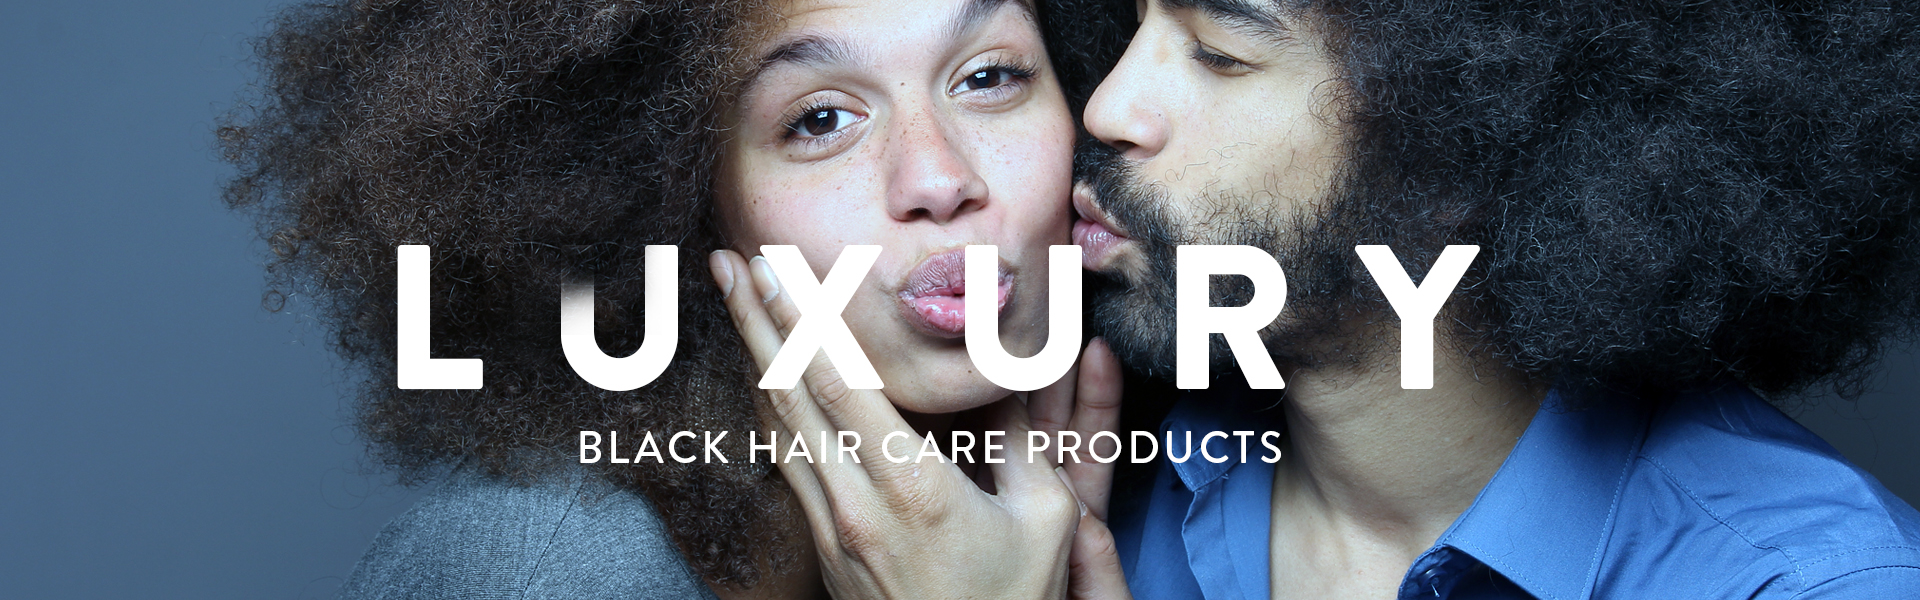 Luxury black hair care products